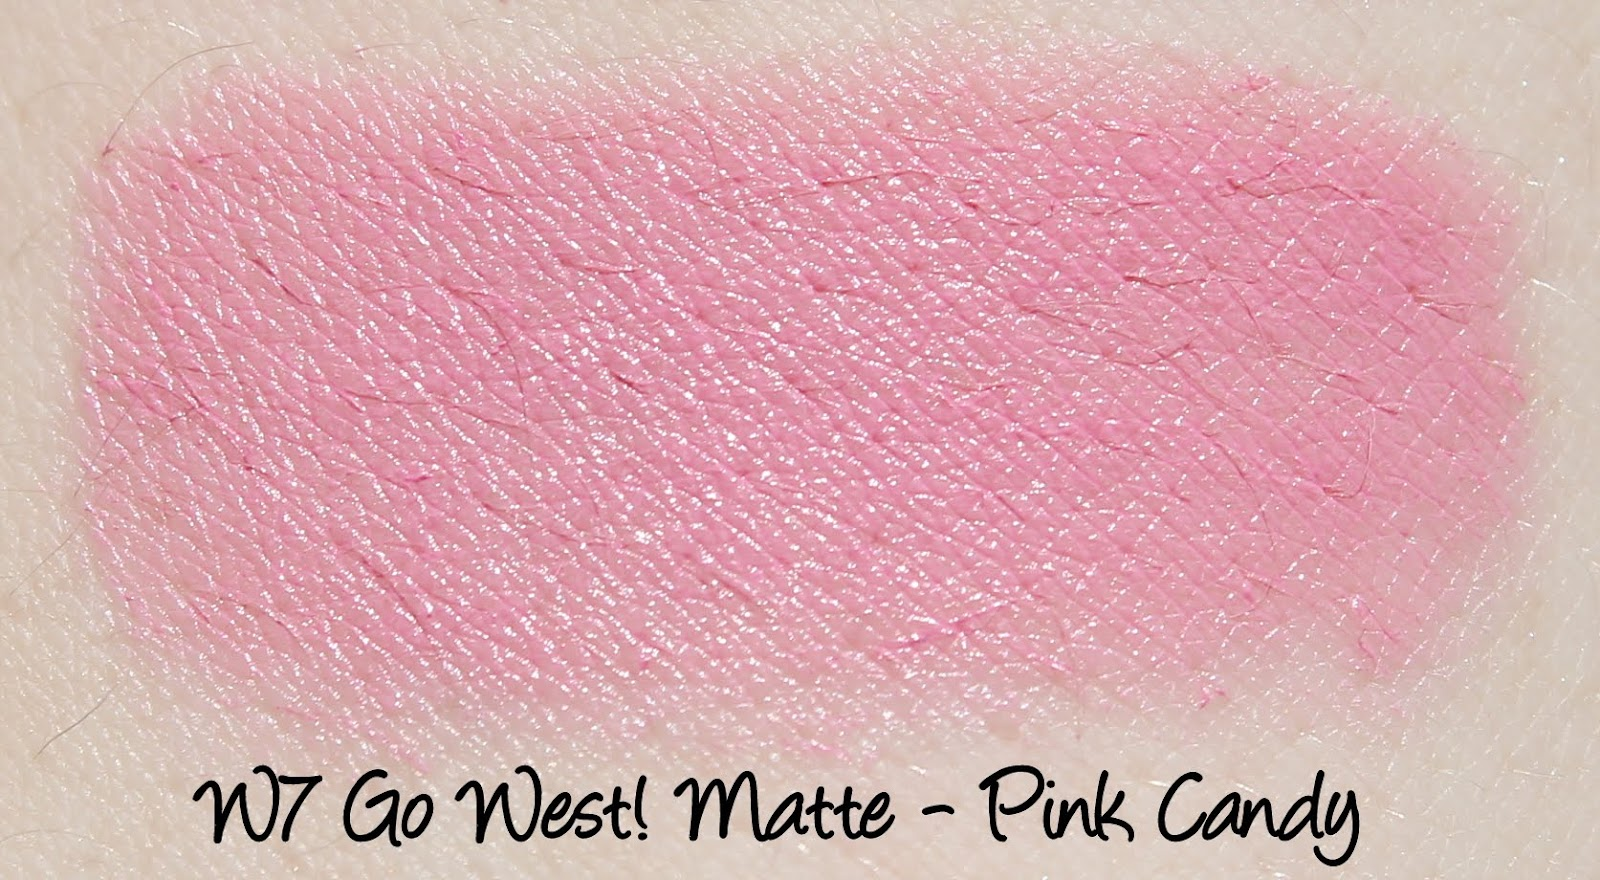 W7 Go West! Matte Lipstick - Pink Candy Swatches & Review